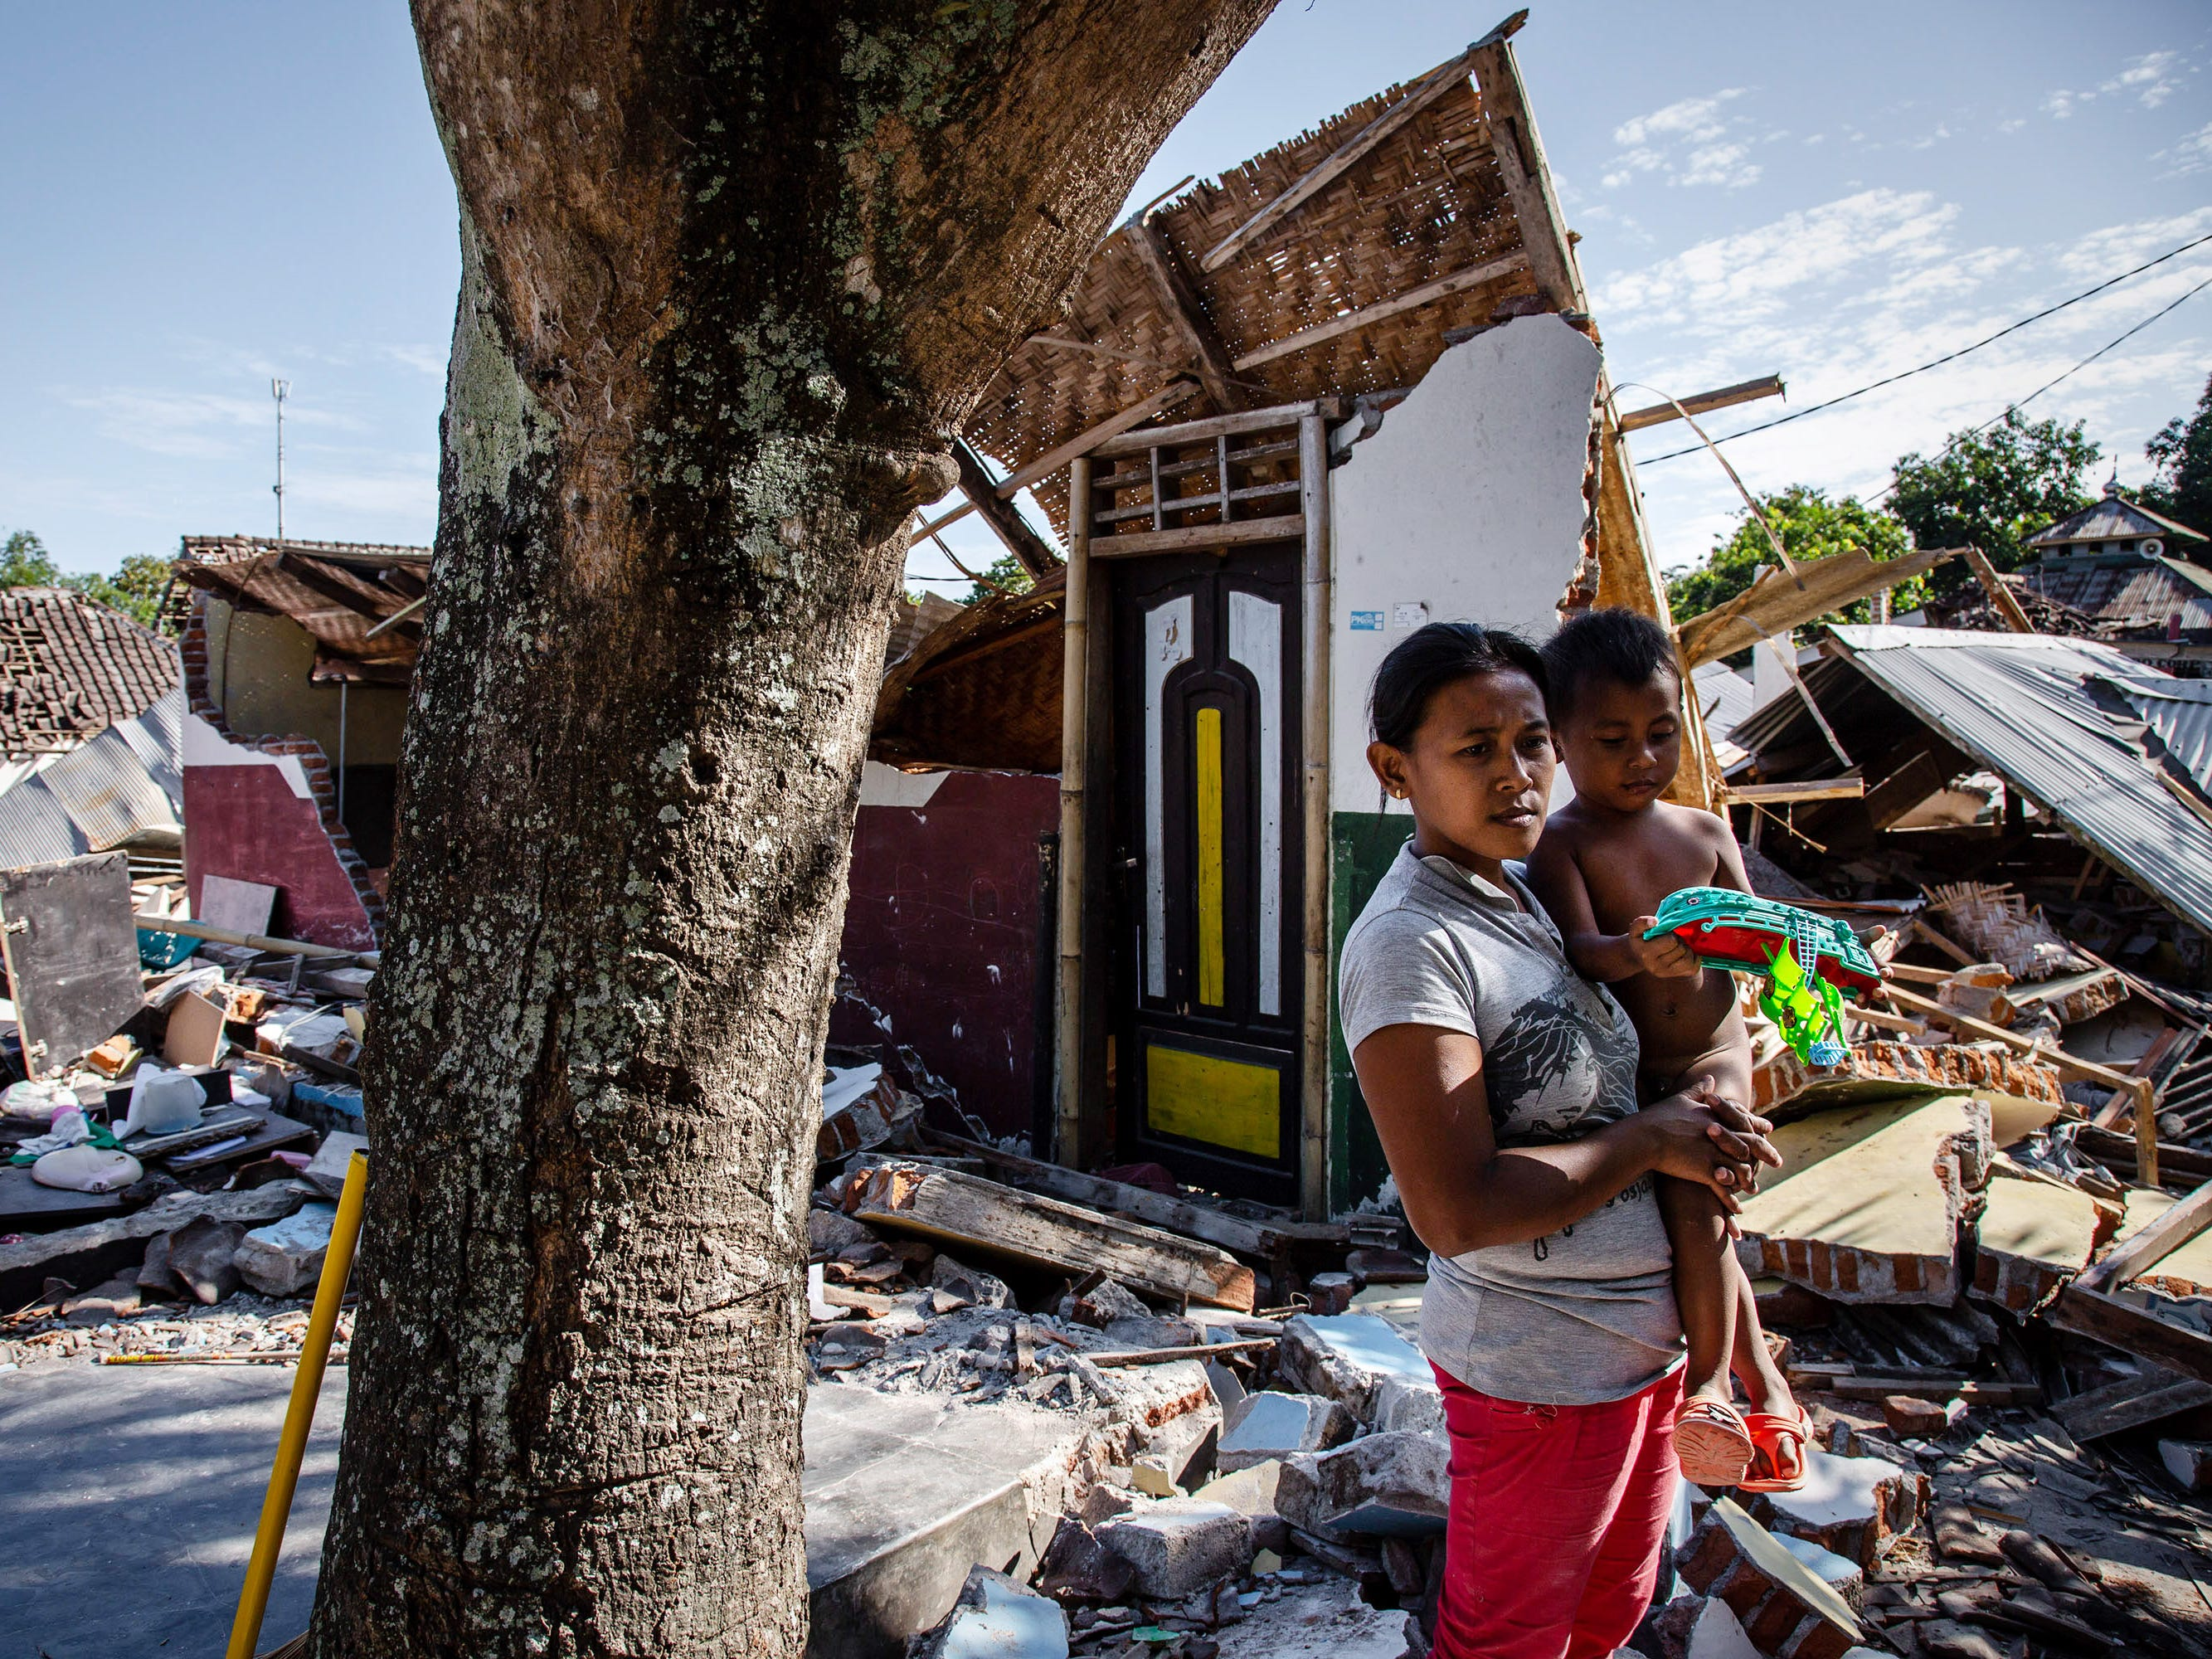 A woman with her son stands near the ruins of their houses following an earthquake in Pemenang on Aug. 8, 2018 in Lombok Island, Indonesia.